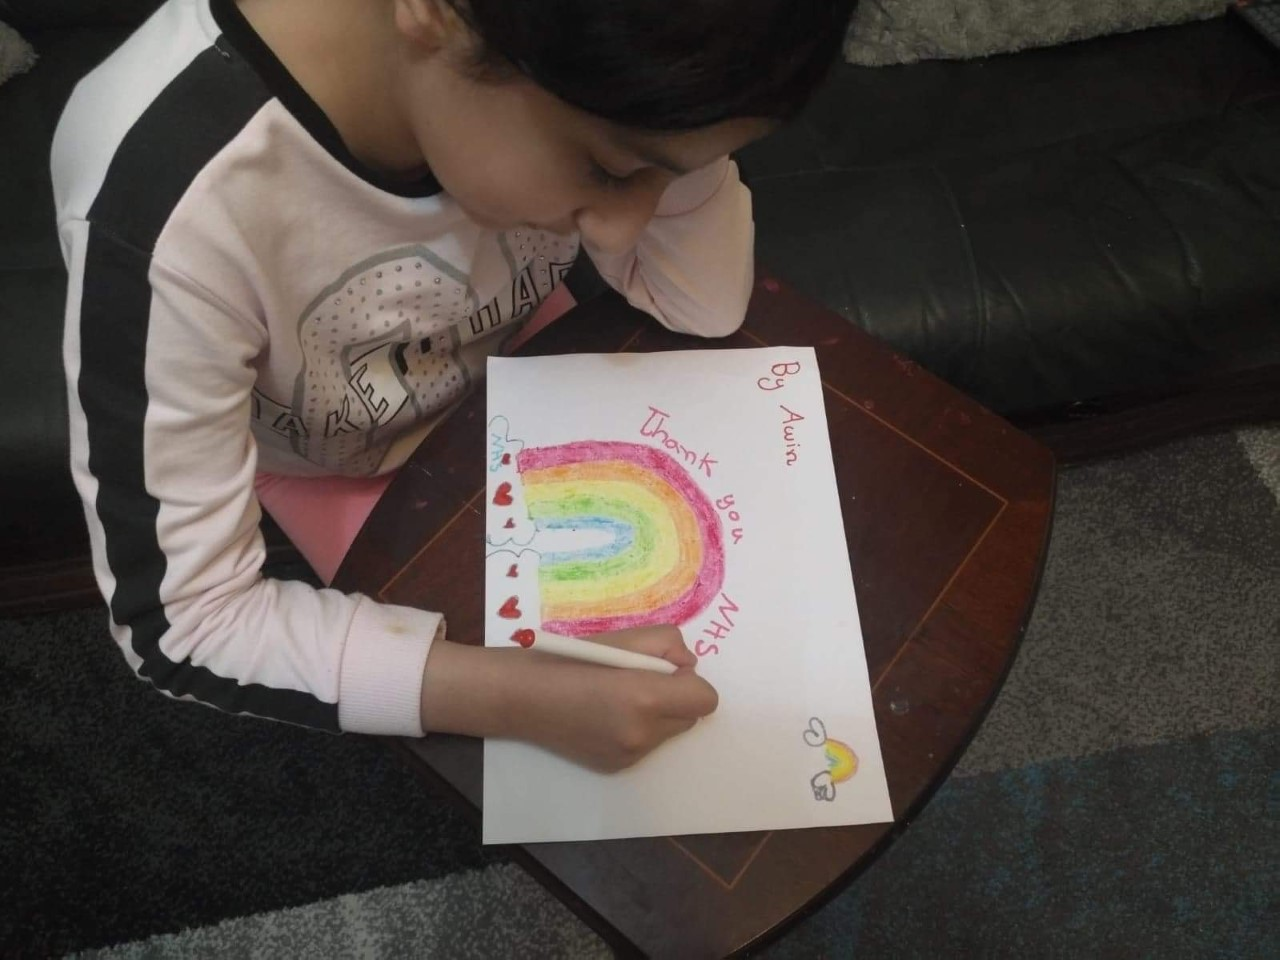 A girl is drawing a picture of a rainbow, celebrating the NHS